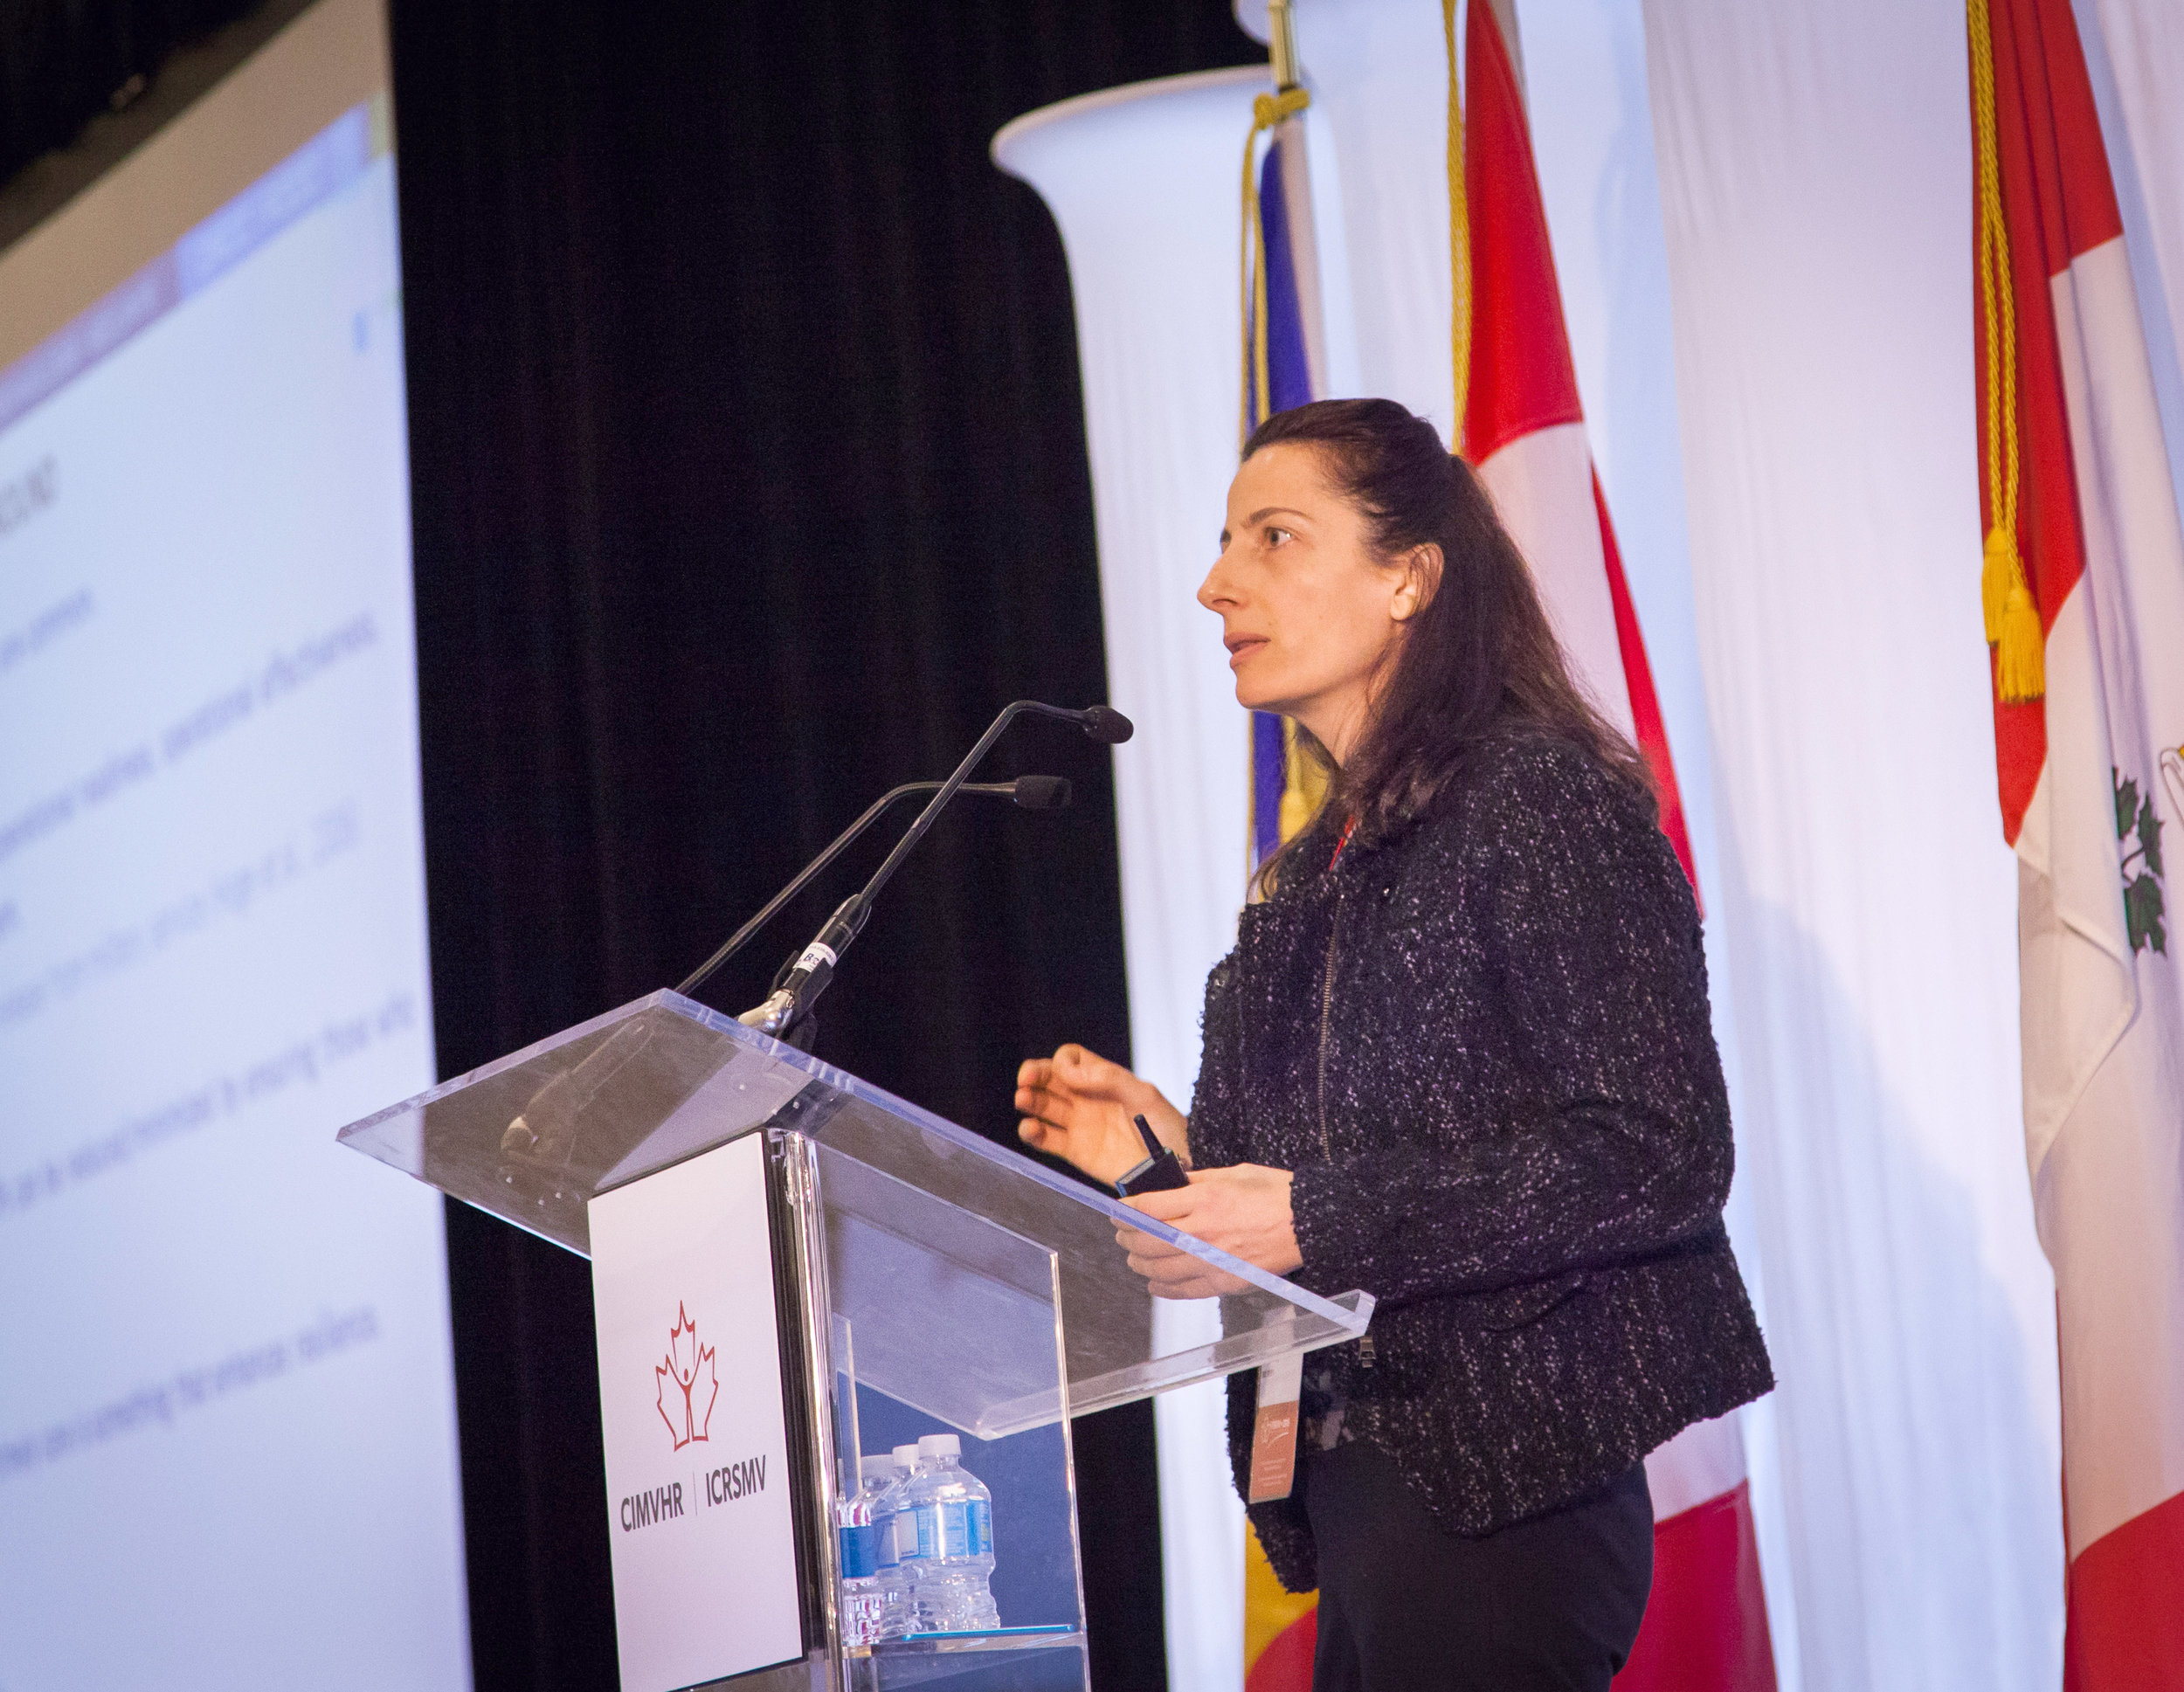 """Dr. Deniz Fikertoglu, of Defence Research and Development Canada (DRDC), delivers the Featured Banting Award Talk with her presentation titled """"Mental Health Service Use in the Canadian Armed Forces: The Past, The Present, and the Future."""""""